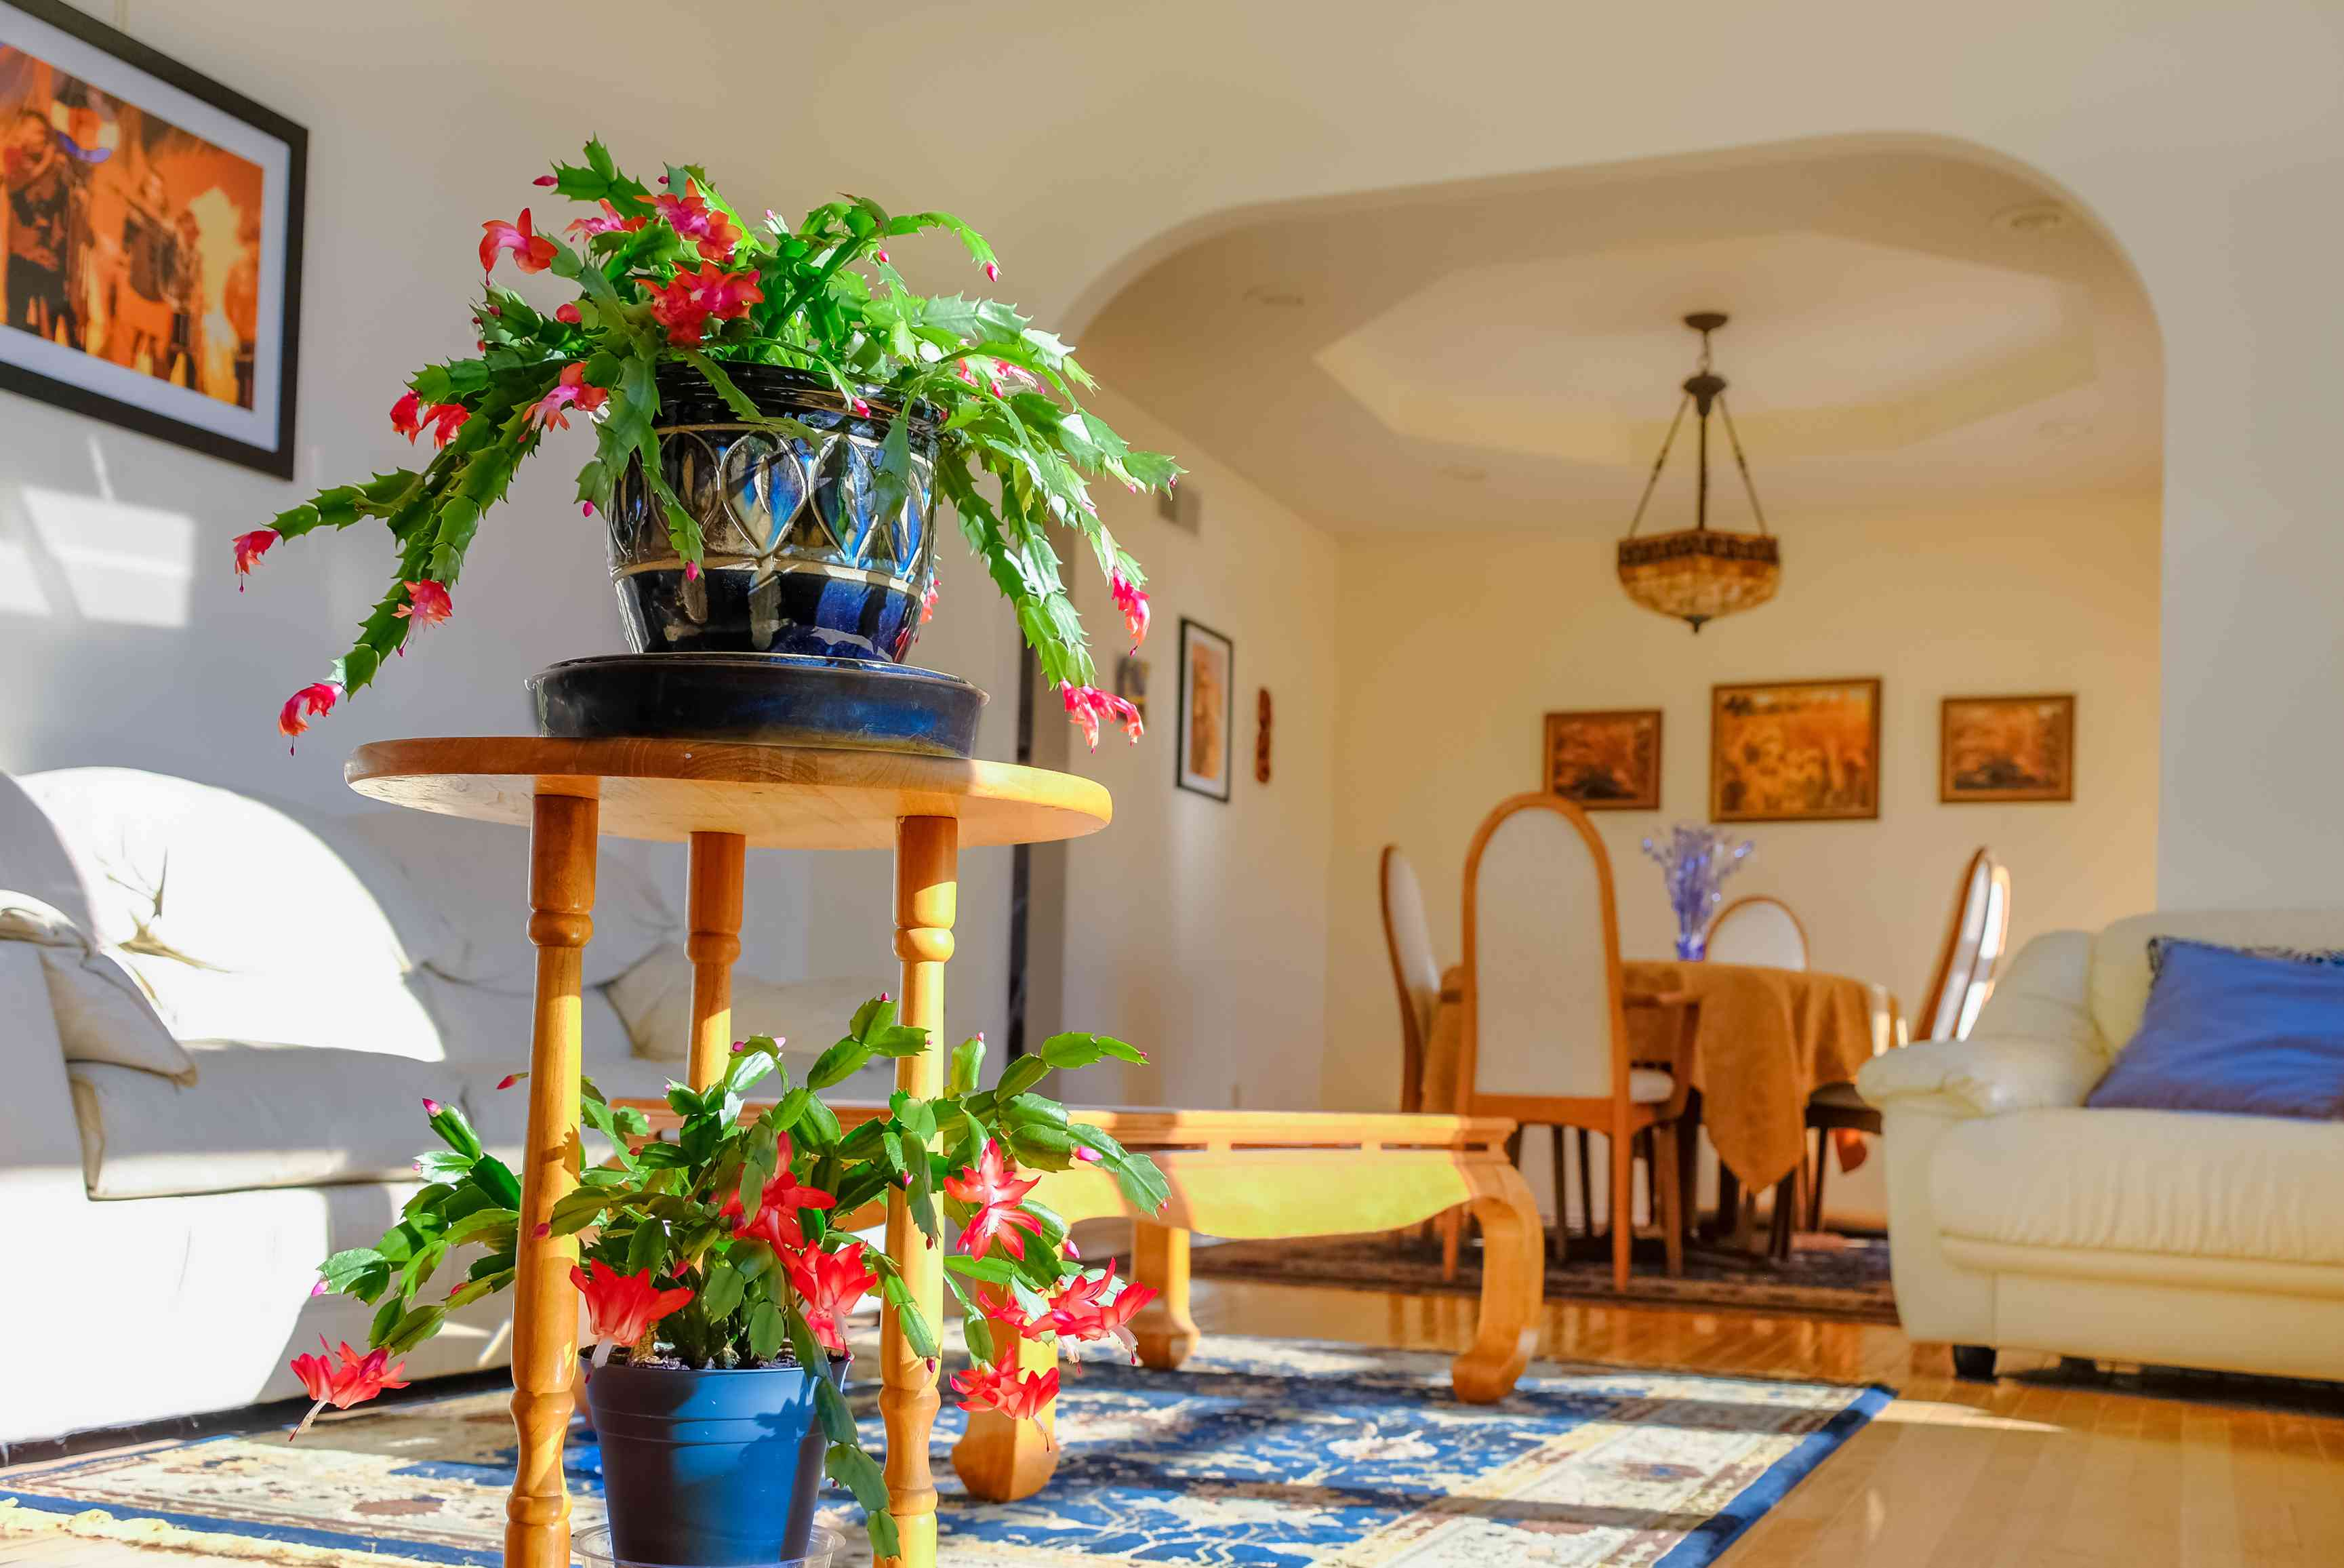 two christmas cactus plants with bright red flowers and green leaves on wooden table in brightly lit living room